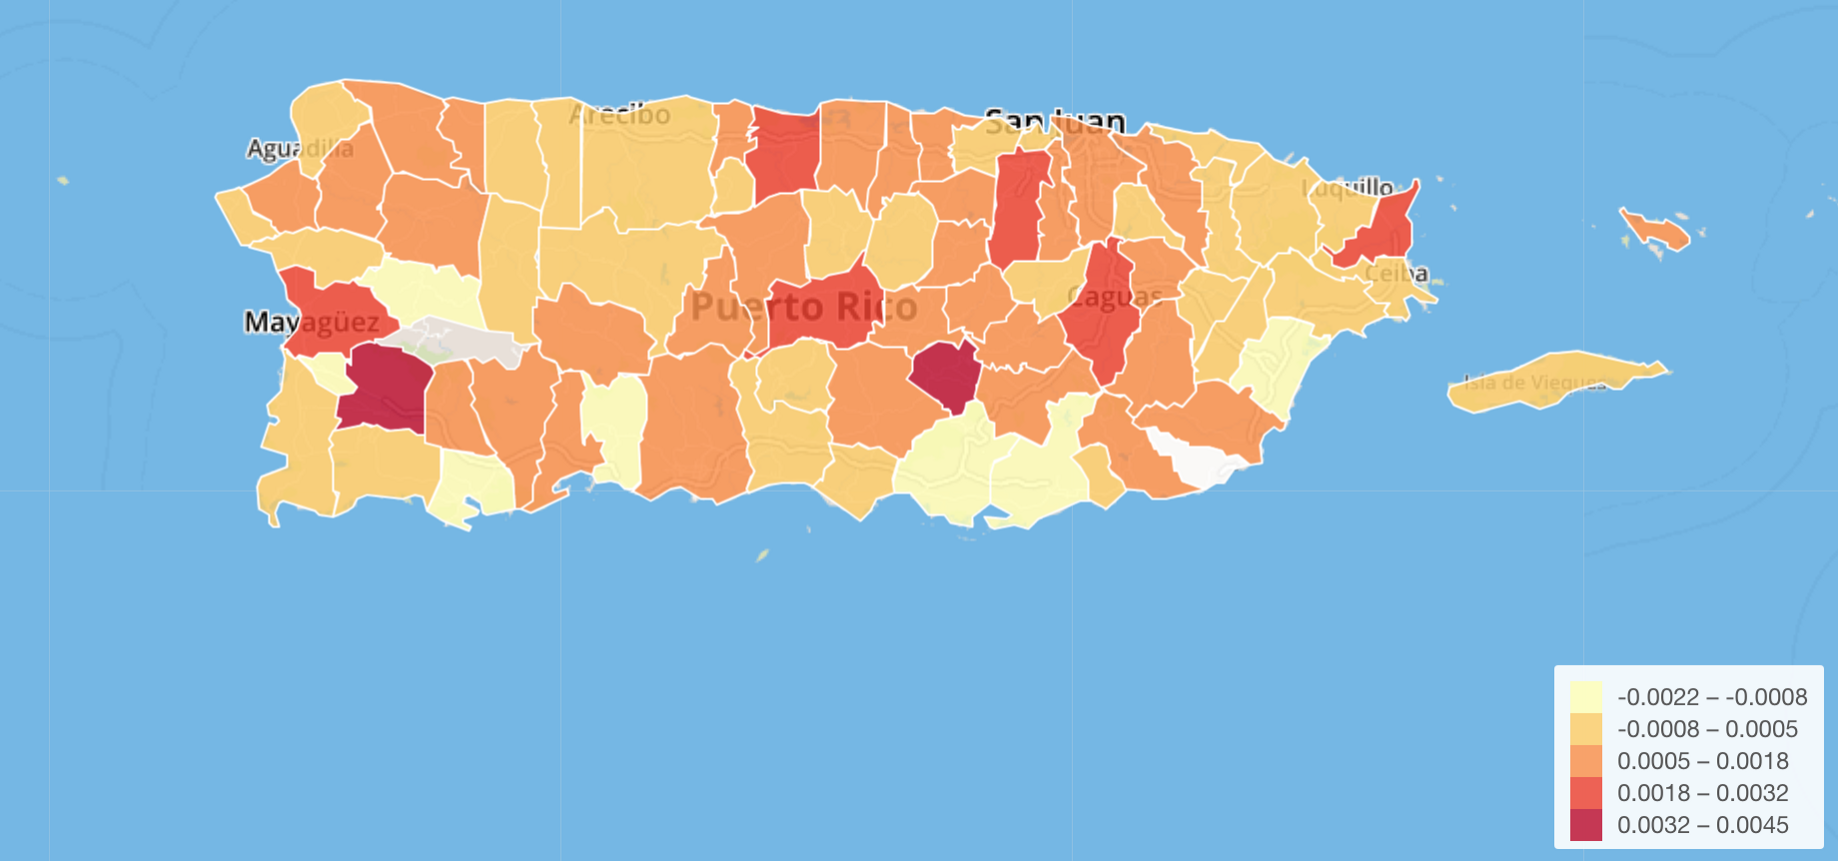 How to Visualize with Custom GeoJSON Map— Puerto Rico